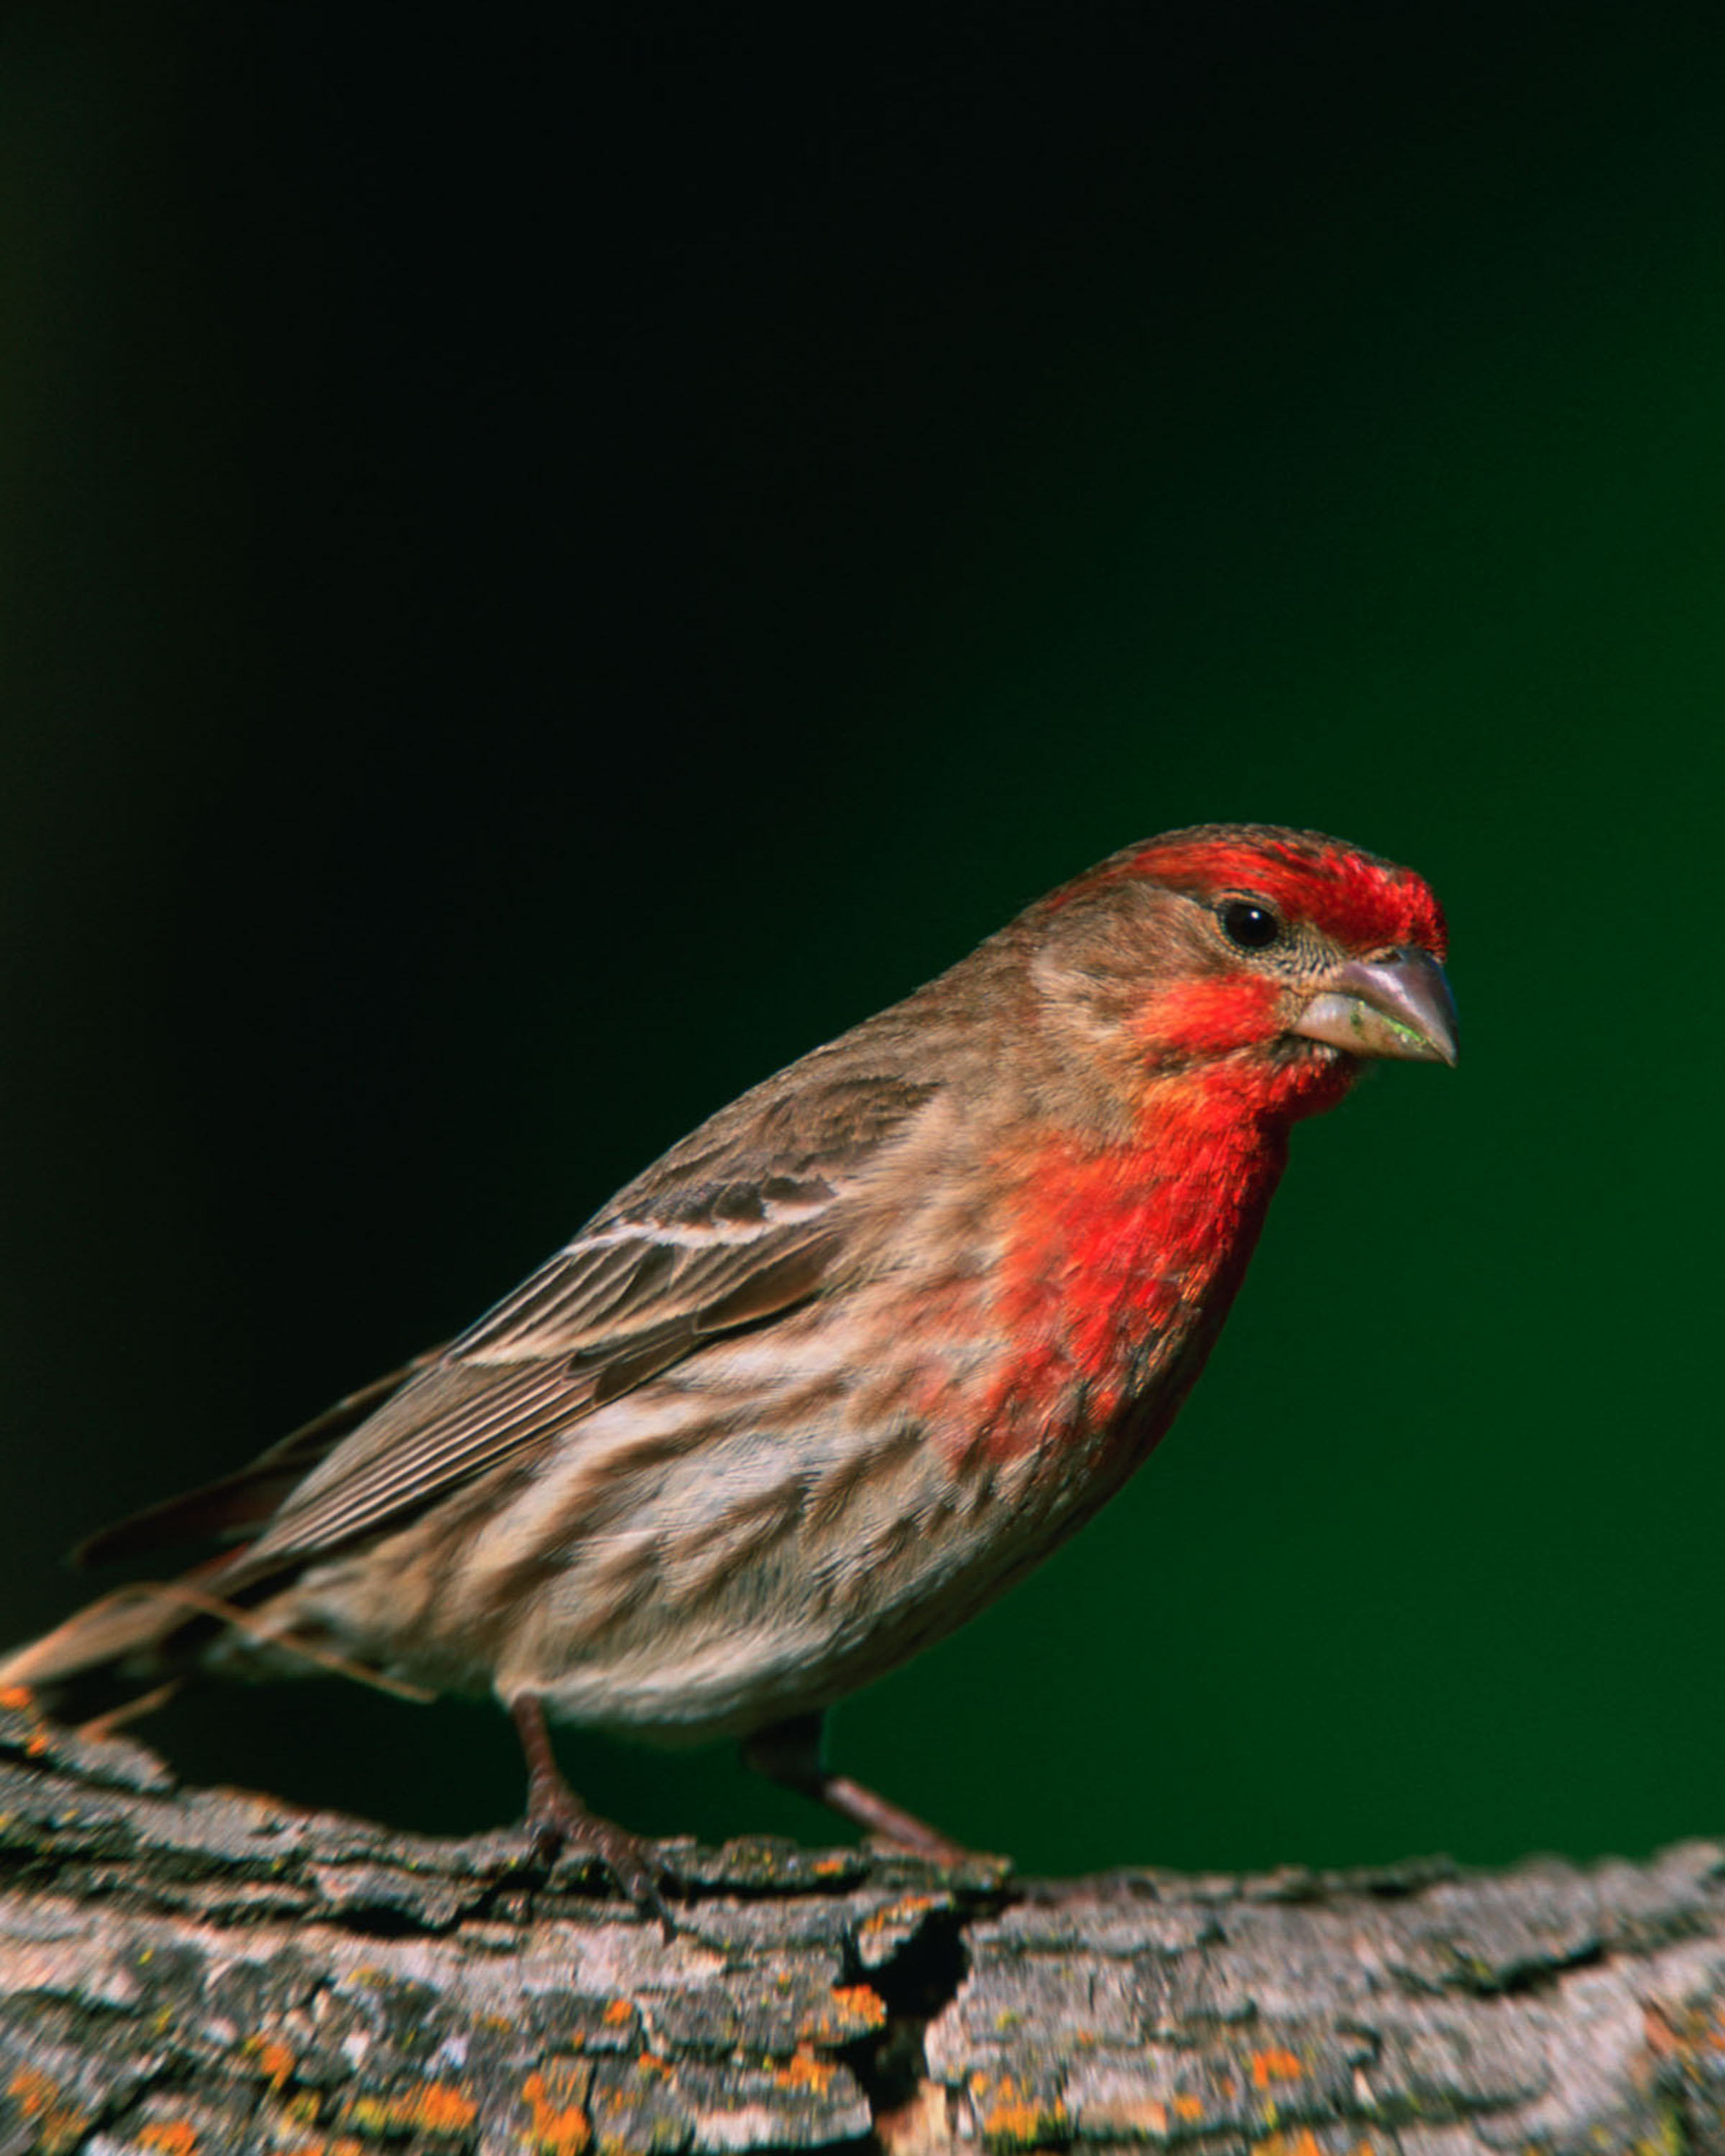 House finch archives wild about utah mens hair and the male house finch biocorpaavc